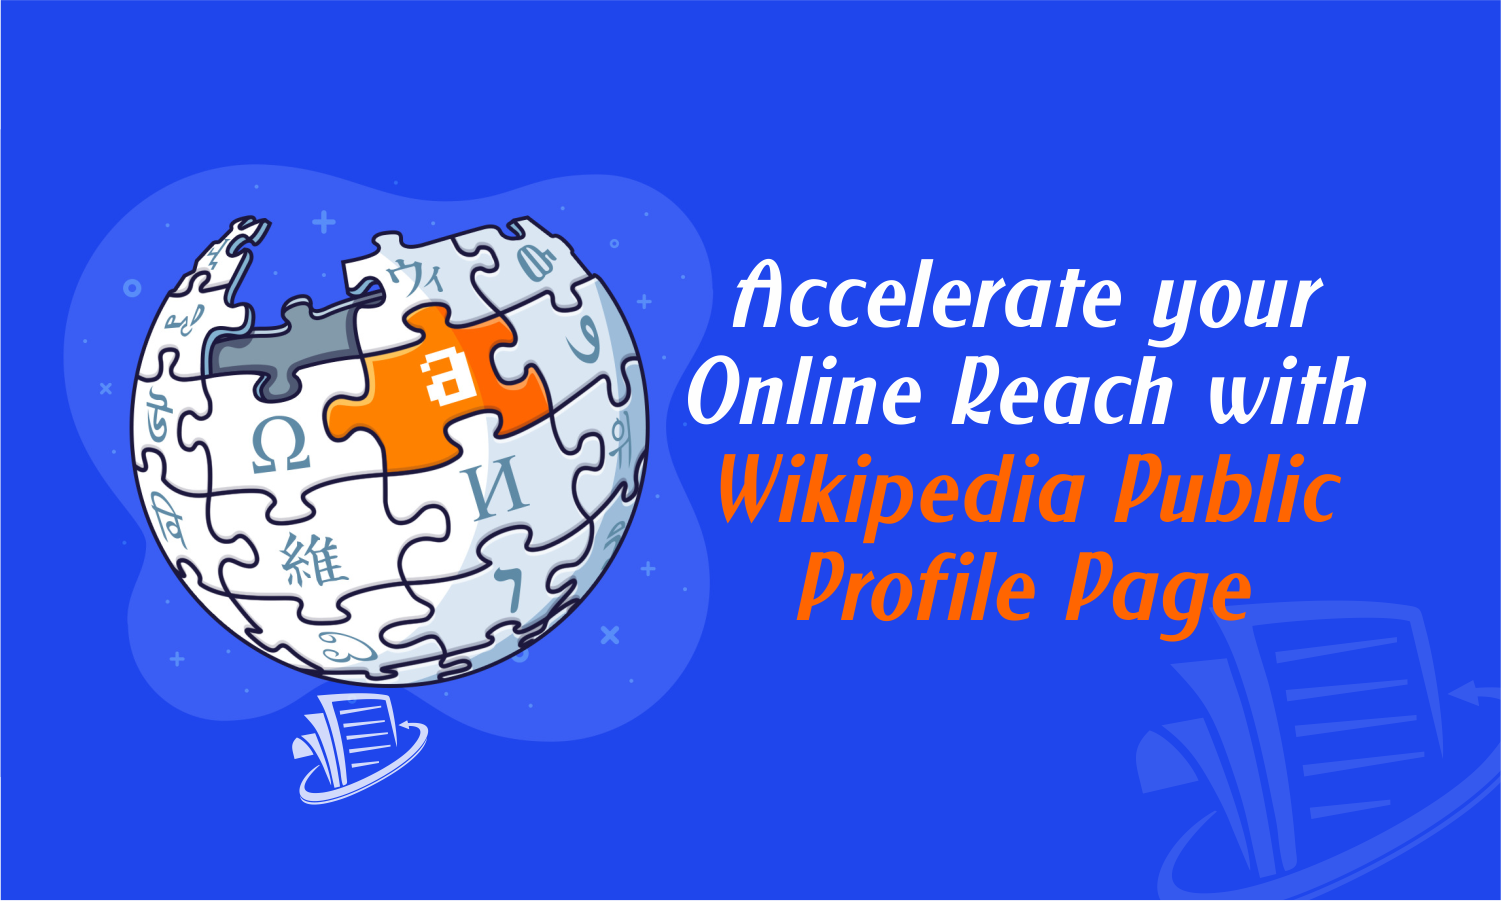 Accelerate your Online Reach with Wikipedia